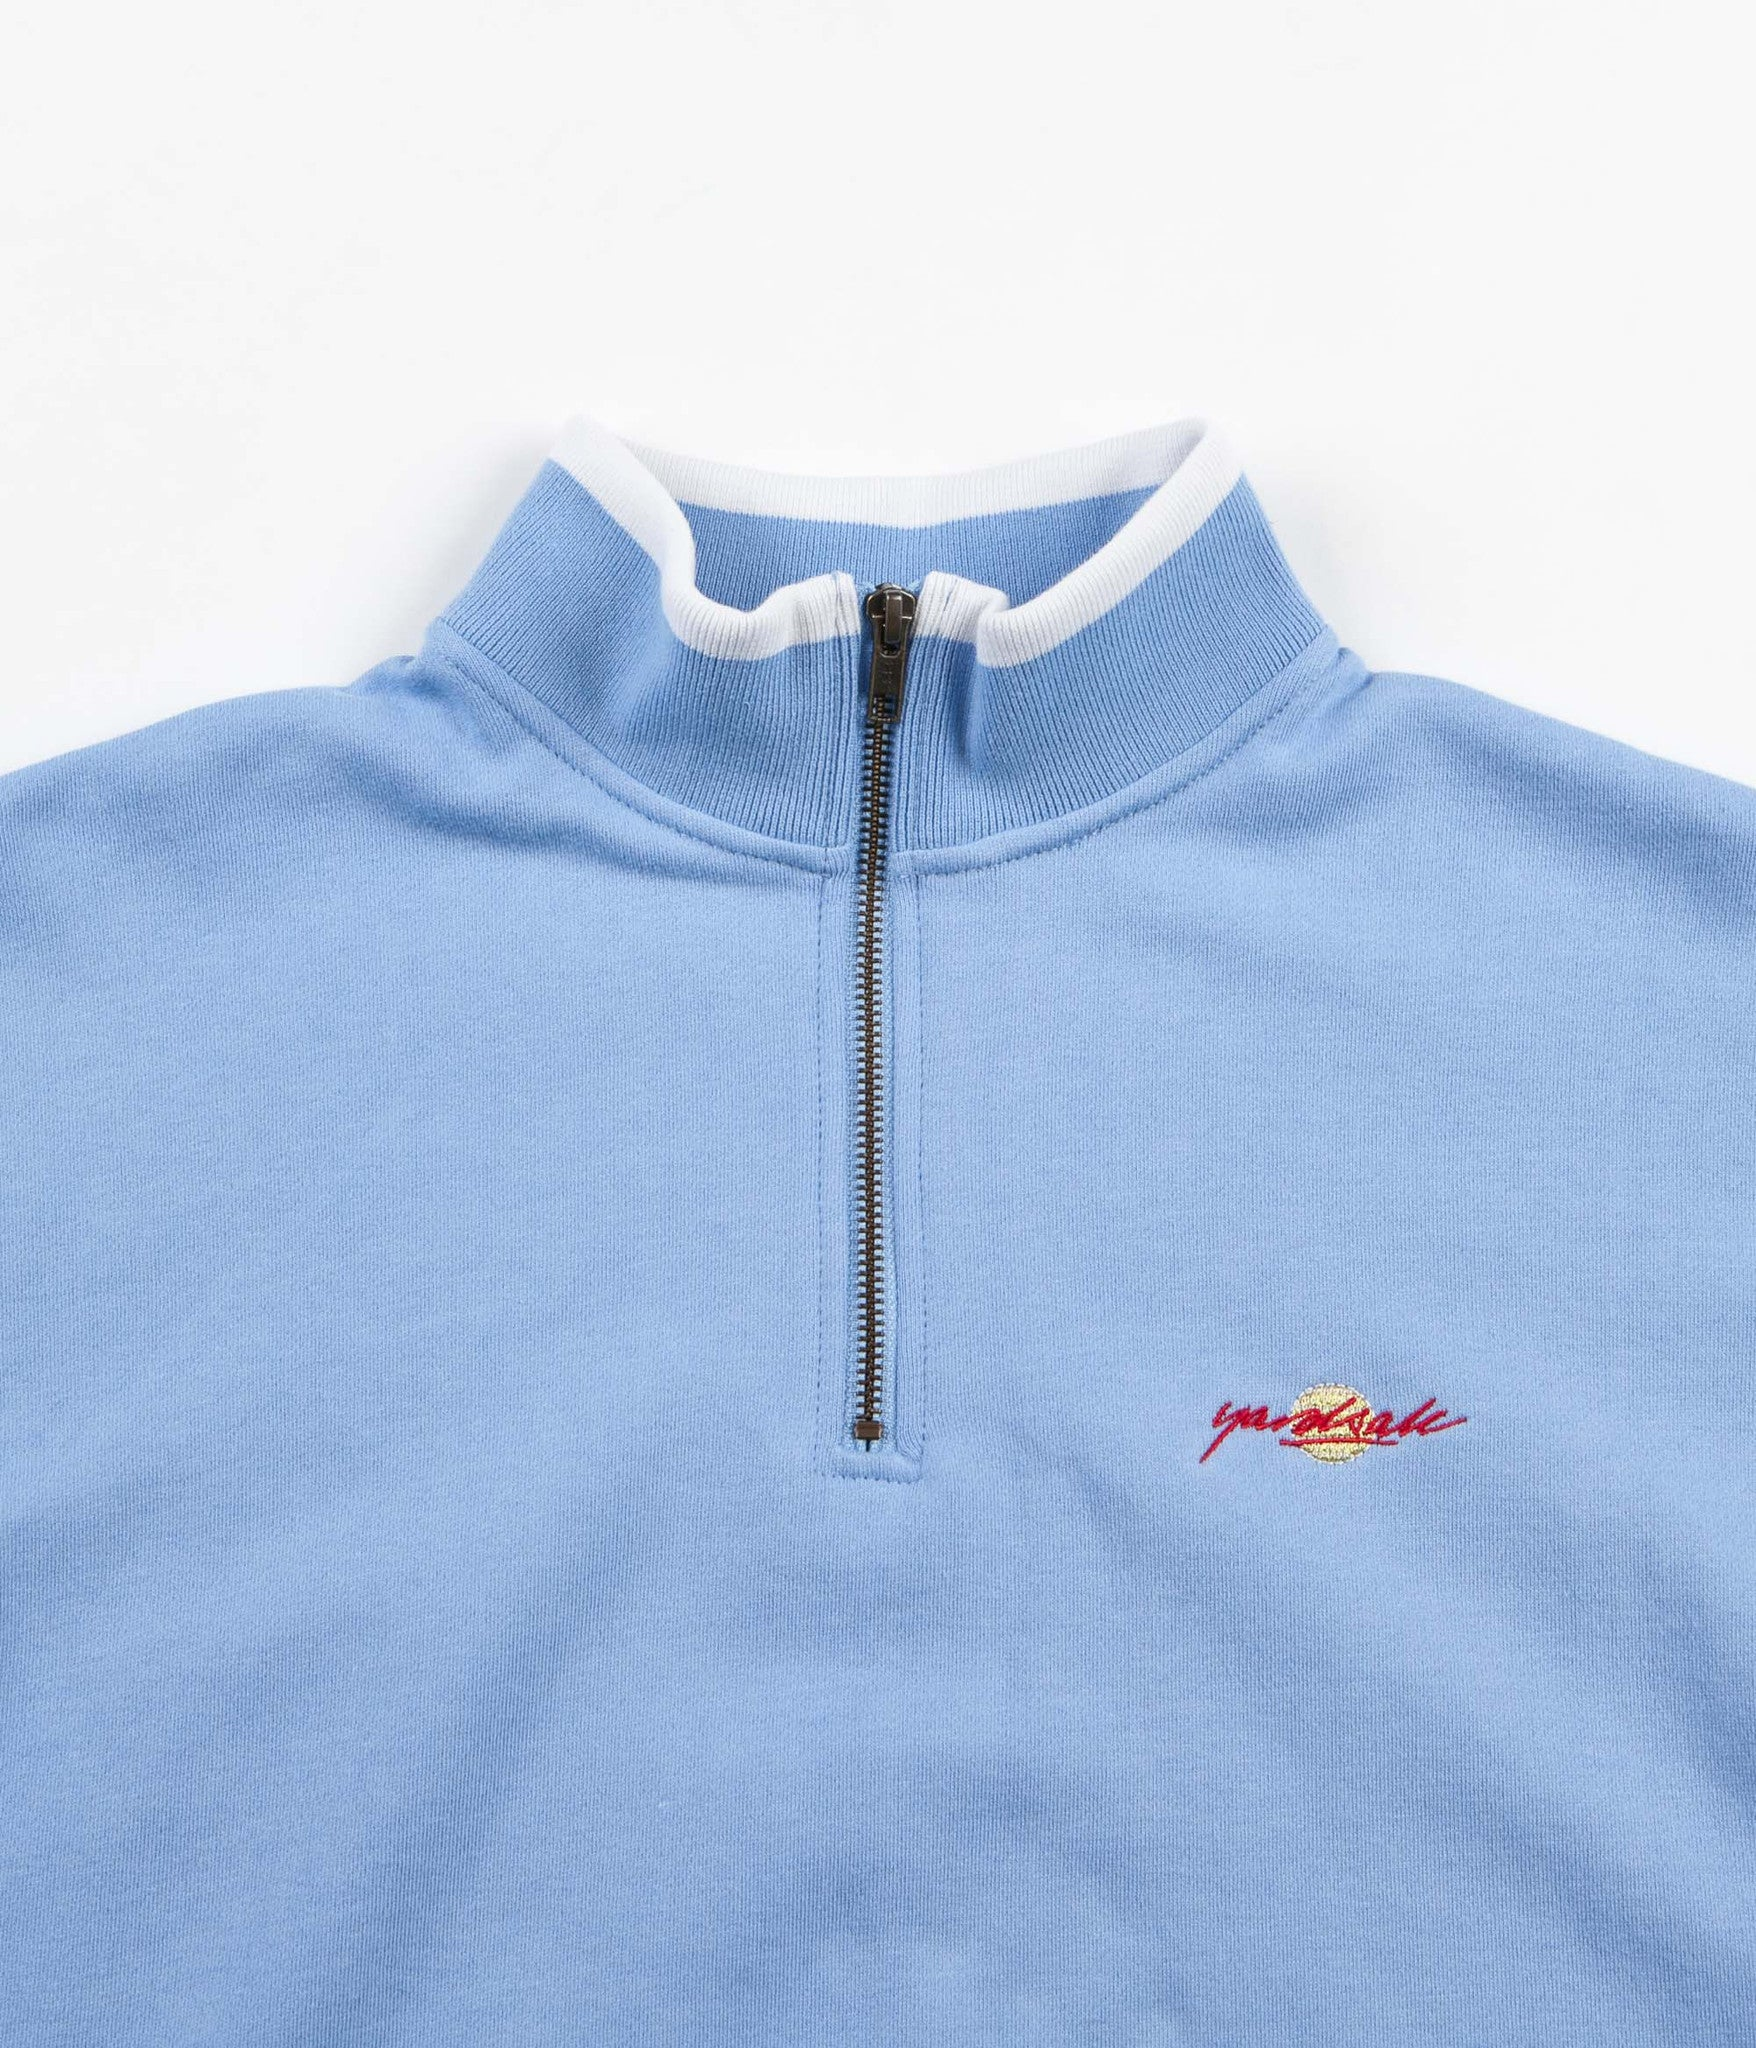 Yardsale Dipped Quarter-Zip Sweatshirt - Baby Blue